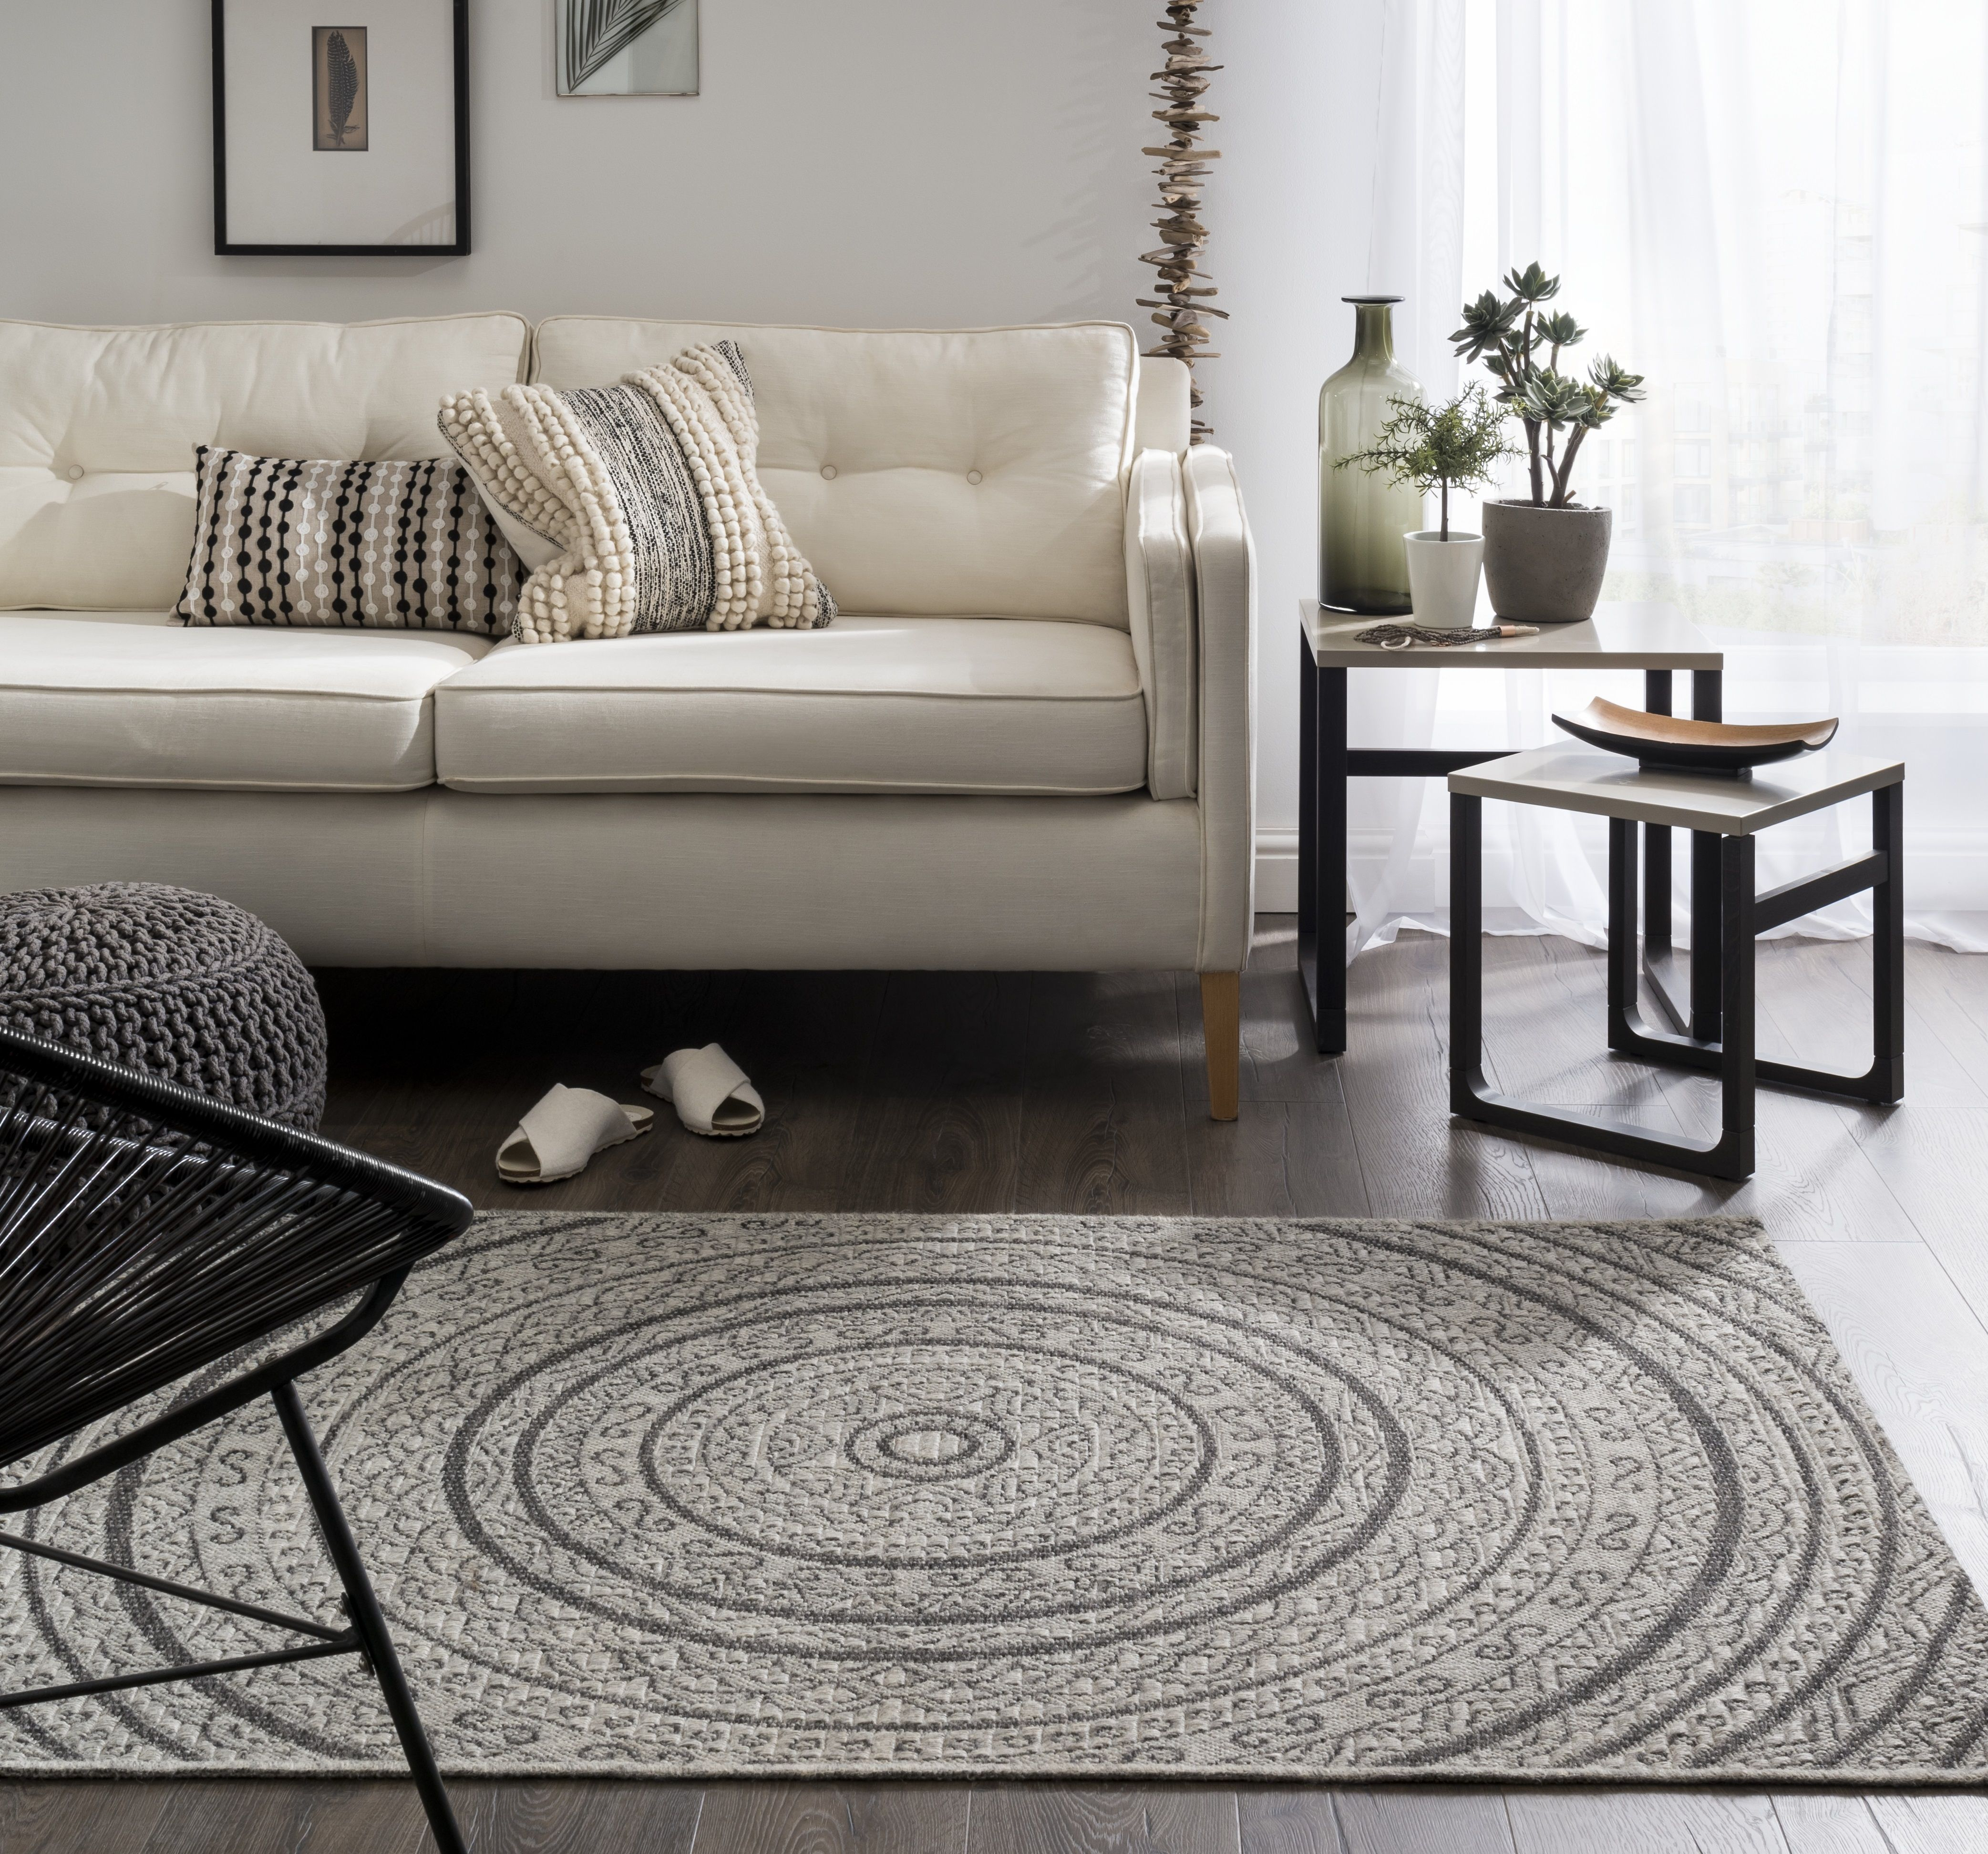 Pin by Carpetright on Our latest rugs Rugs, Beige rug